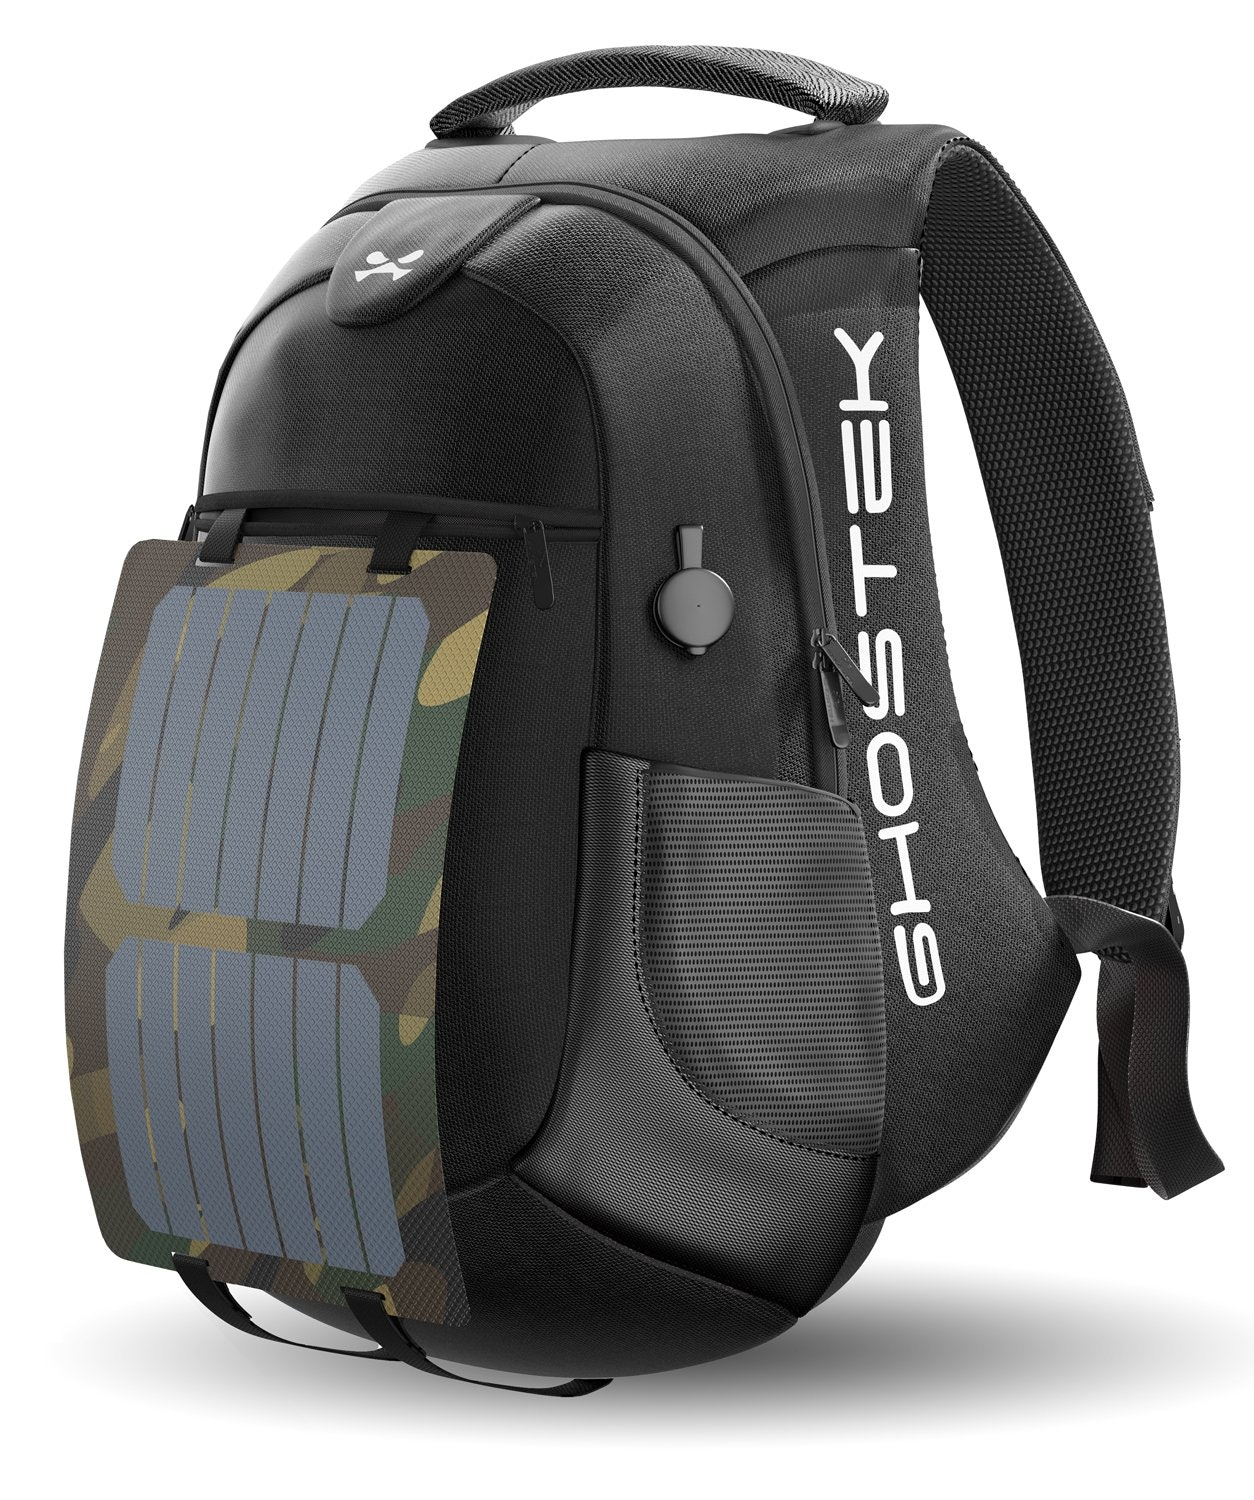 """Ghostek NRGsolar Series 40L Eco Computer Laptop Messenger Backpack Book Bag + 16,000mAh Power Bank with 5 USB Ports   Water Resistant   8.8-Watt Solar Panel   Laptops Up To 15.6"""" (Black)"""